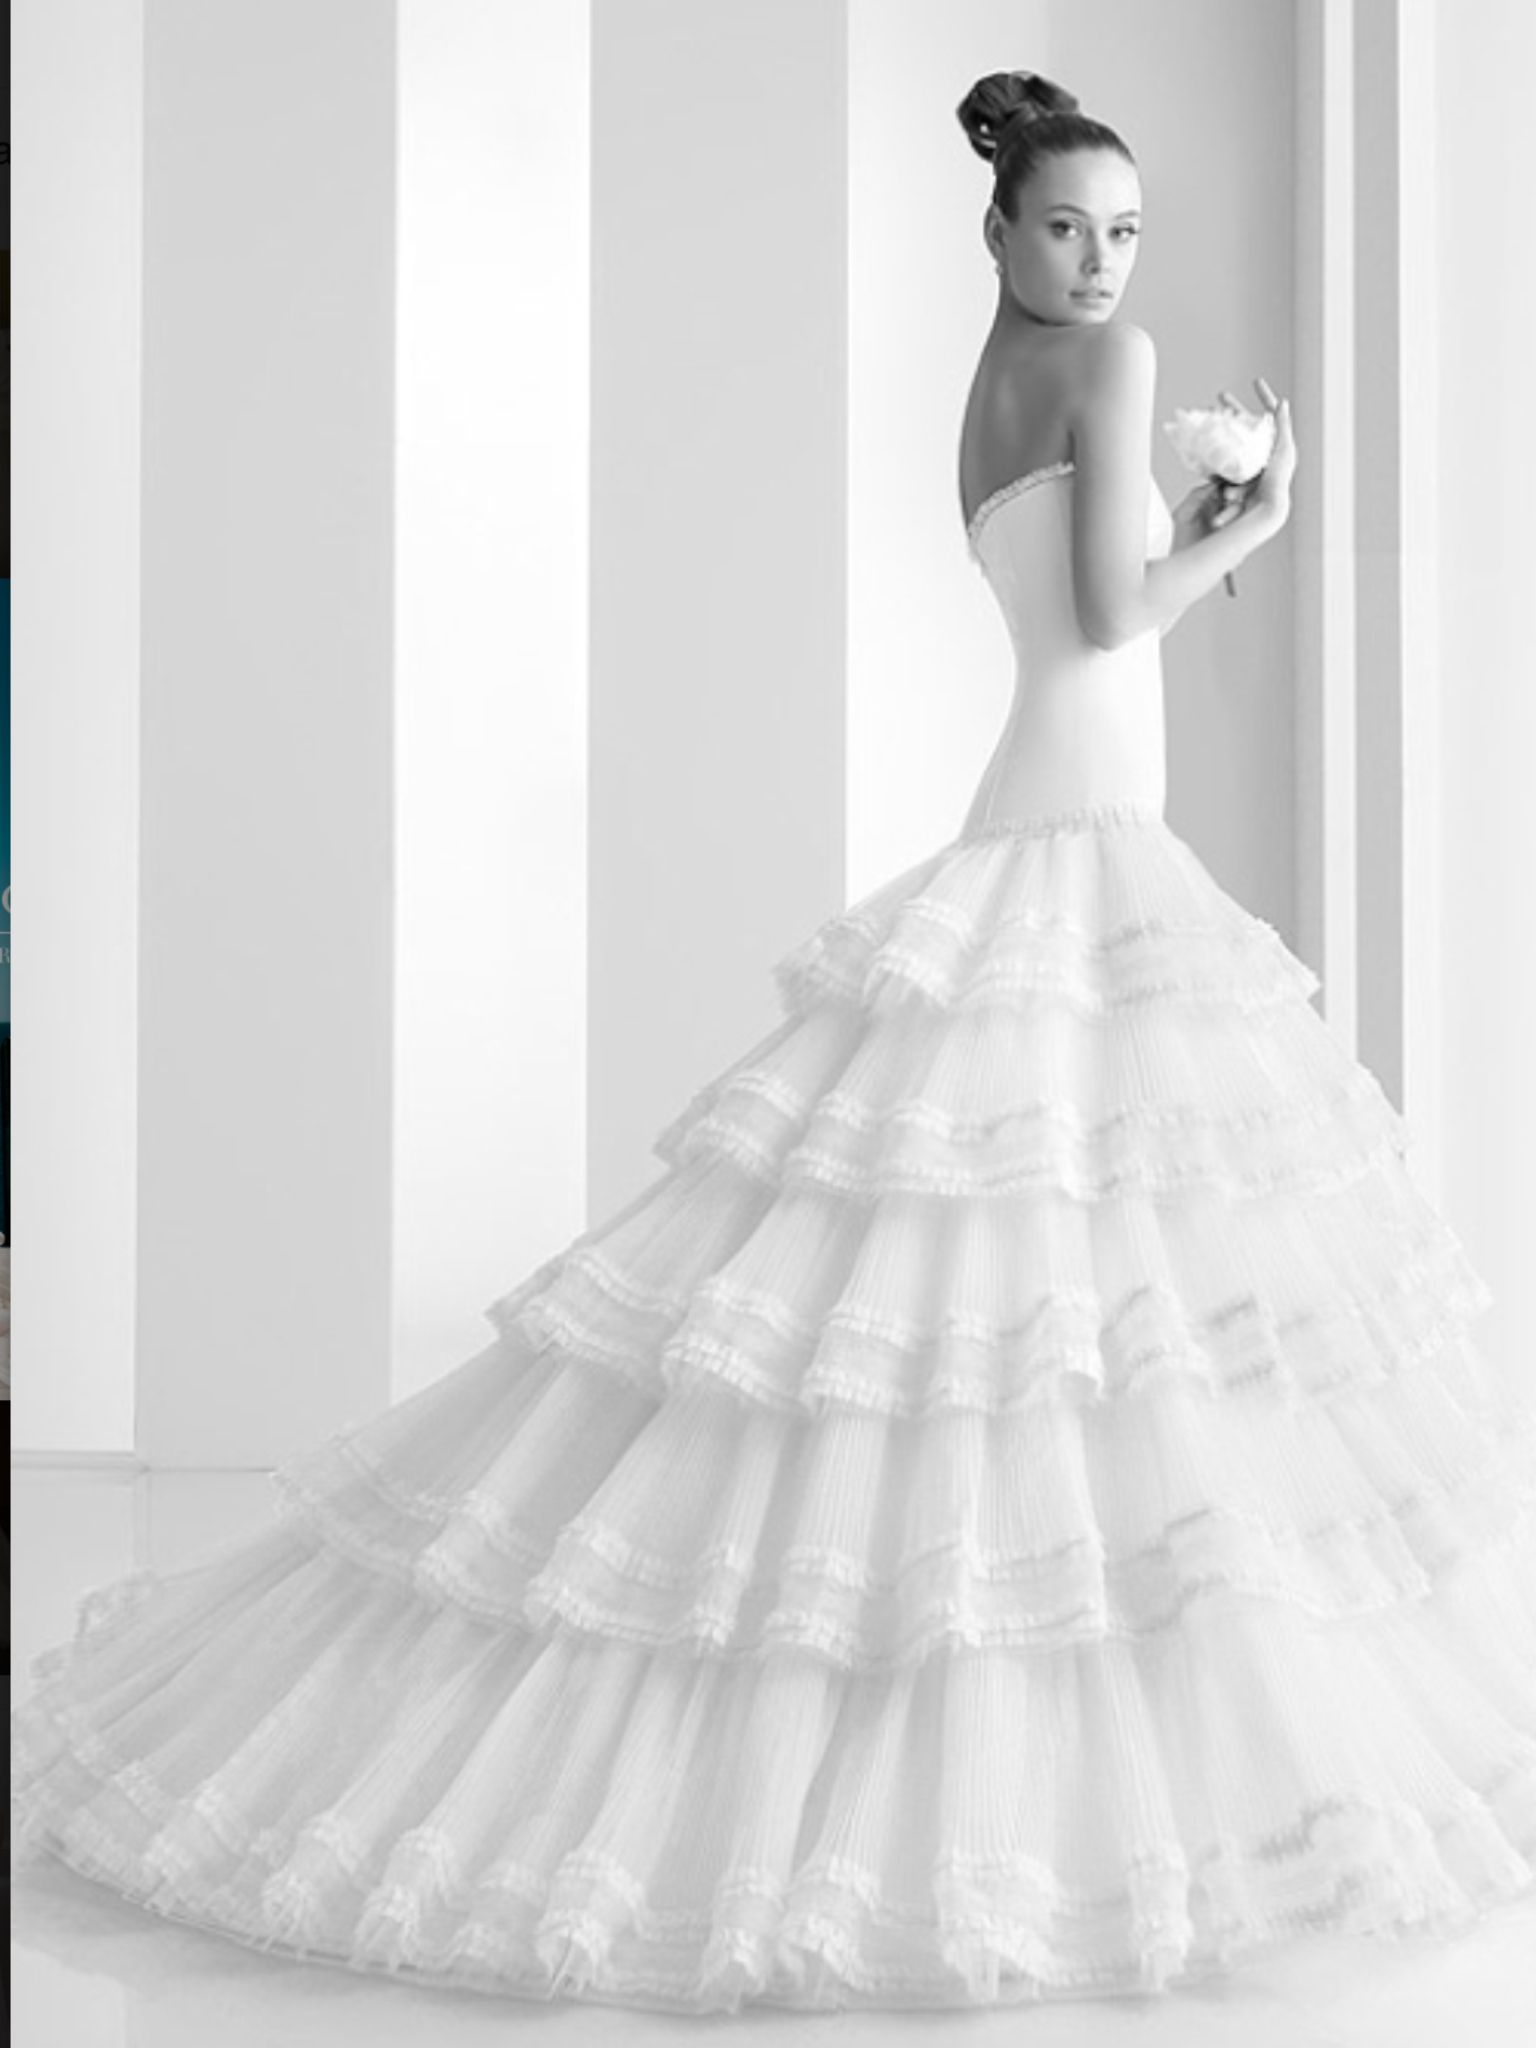 Spanish style wedding dress | DW | Pinterest | Spanish style ...